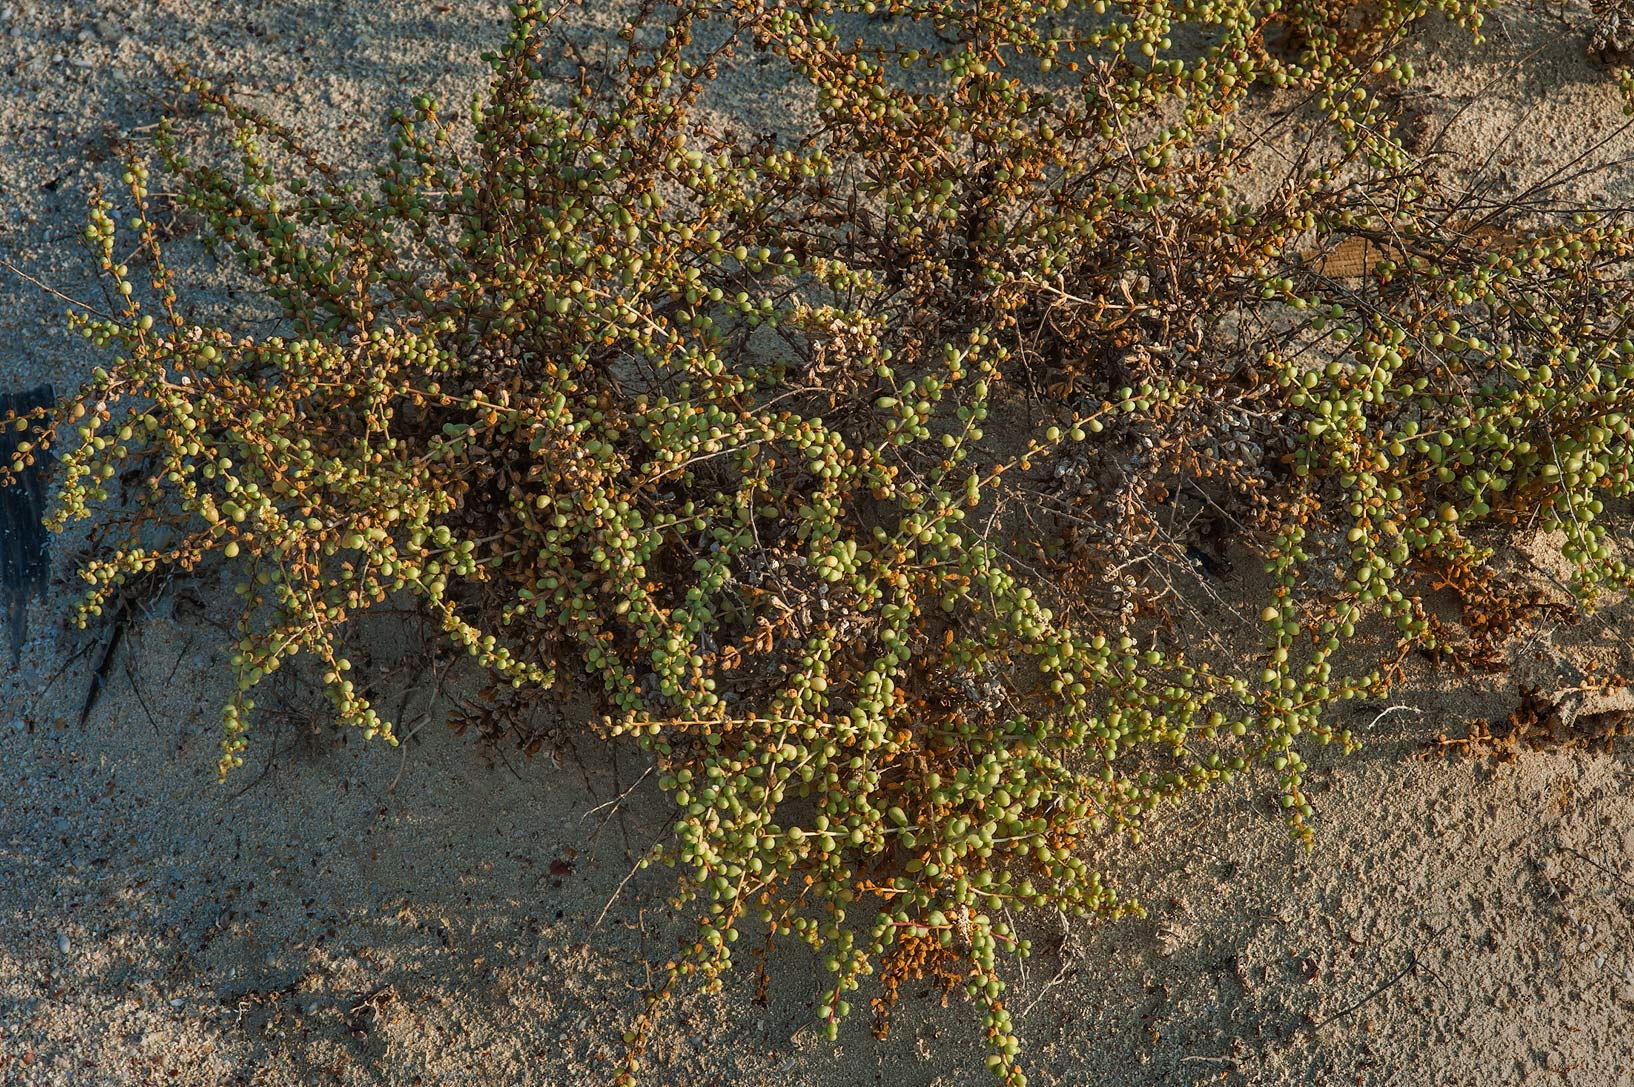 Salt tolerant plant of Salsola drummondii on a...Samra, near the border. Southern Qatar